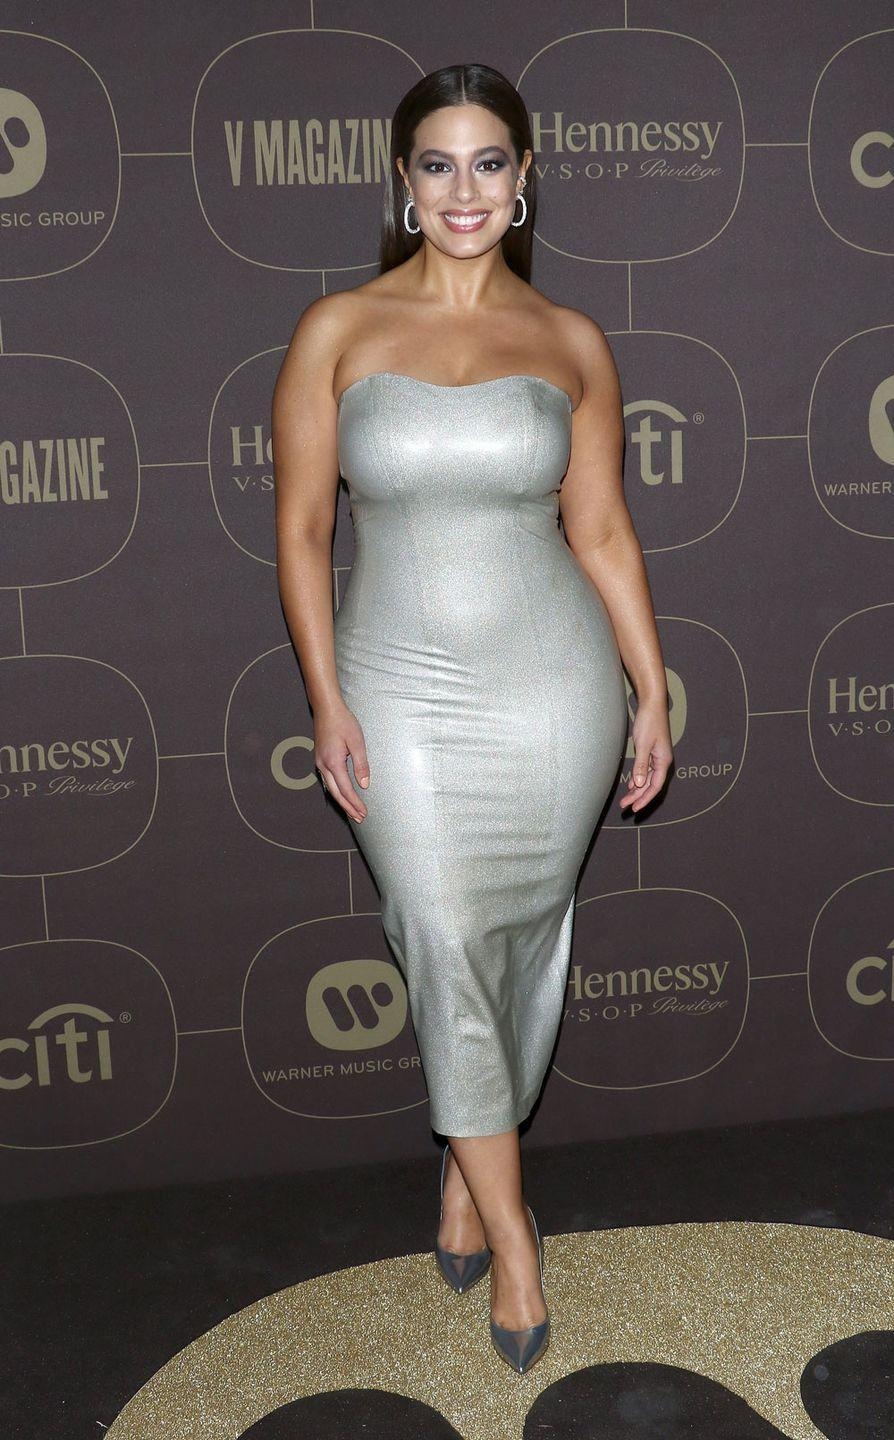 """<p>Attending Warner Music's Pre Grammy Party: In a <a href=""""https://www.cosmopolitan.com/uk/fashion/celebrity/a15891446/ashley-graham-looks-like-a-sexy-cyborg-in-this-skin-tight-silver-latex-dress/"""" rel=""""nofollow noopener"""" target=""""_blank"""" data-ylk=""""slk:skin-tight latex dress"""" class=""""link rapid-noclick-resp"""">skin-tight latex dress</a> that literally left us drooling at our desks, Ashley proved there is not a single look she can't pull off. </p>"""